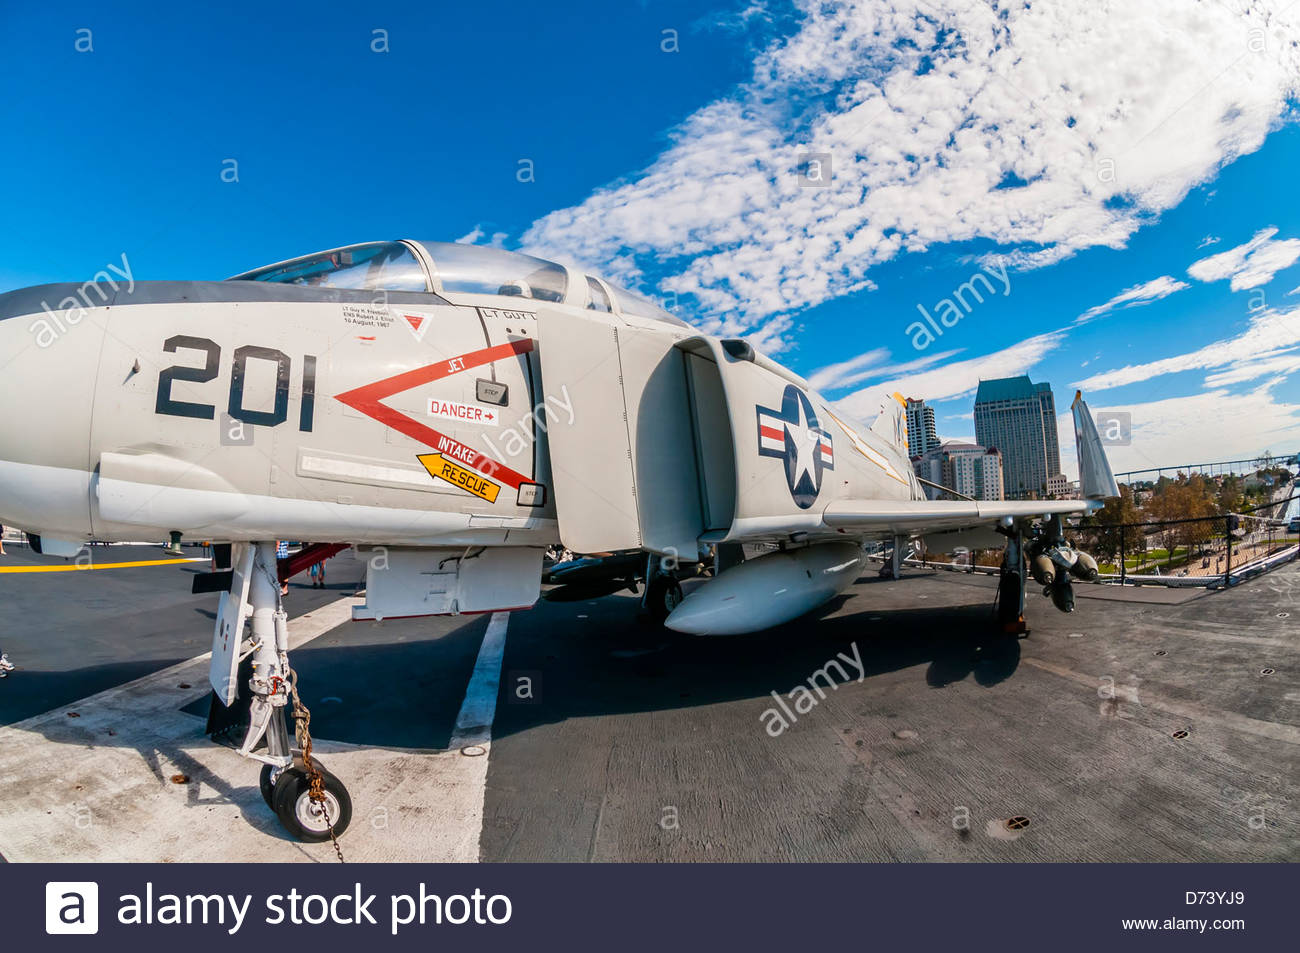 USS Midway Museum (aircraft carrier), Embarcadero, San Diego, California USA. - Stock Image